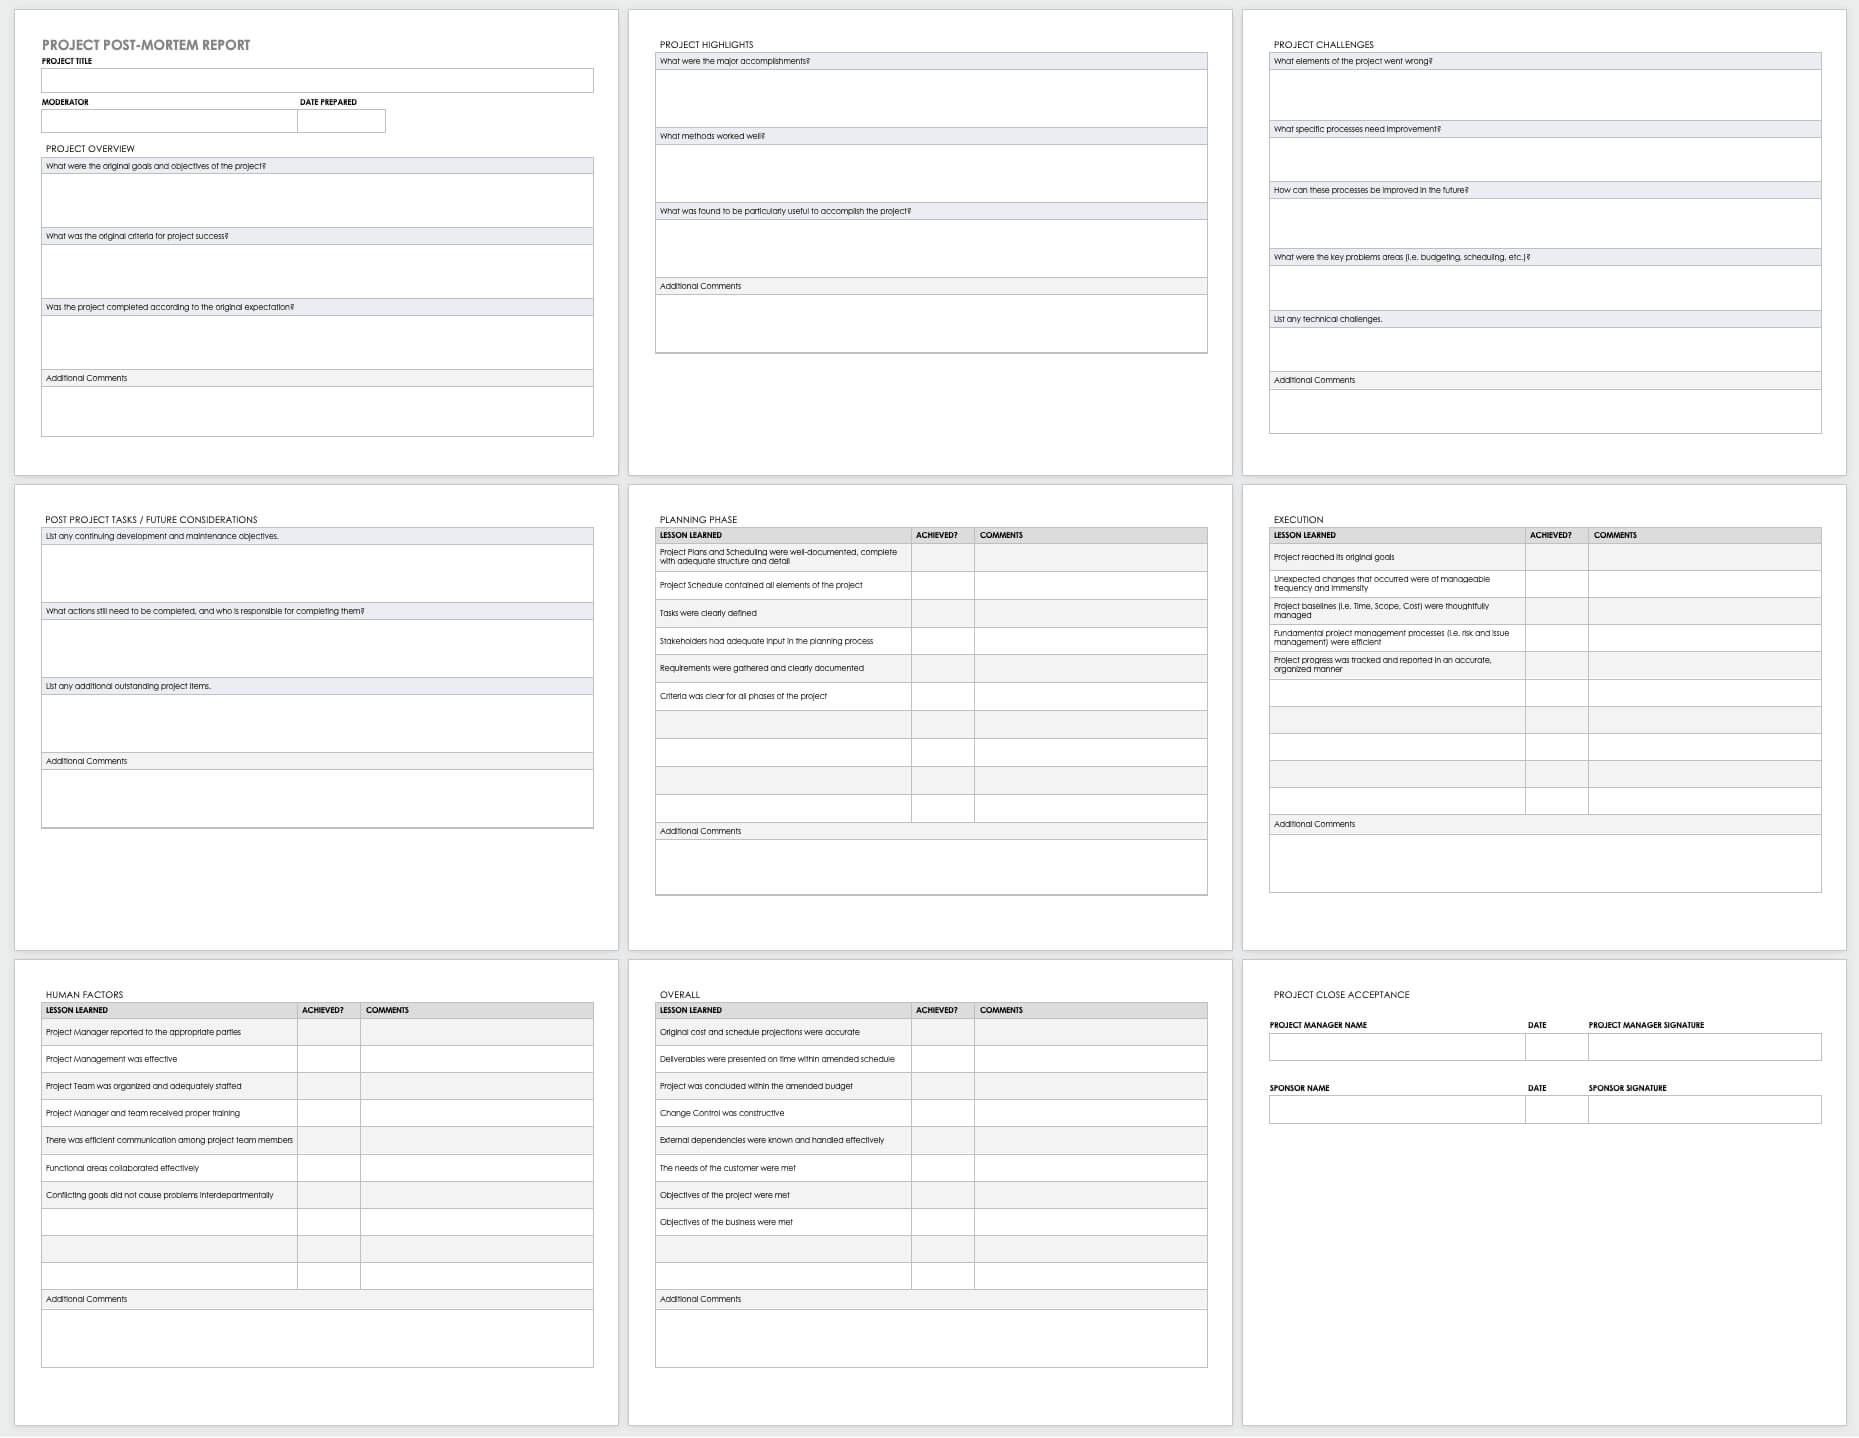 Free Project Report Templates | Smartsheet Inside Post Event Evaluation Report Template